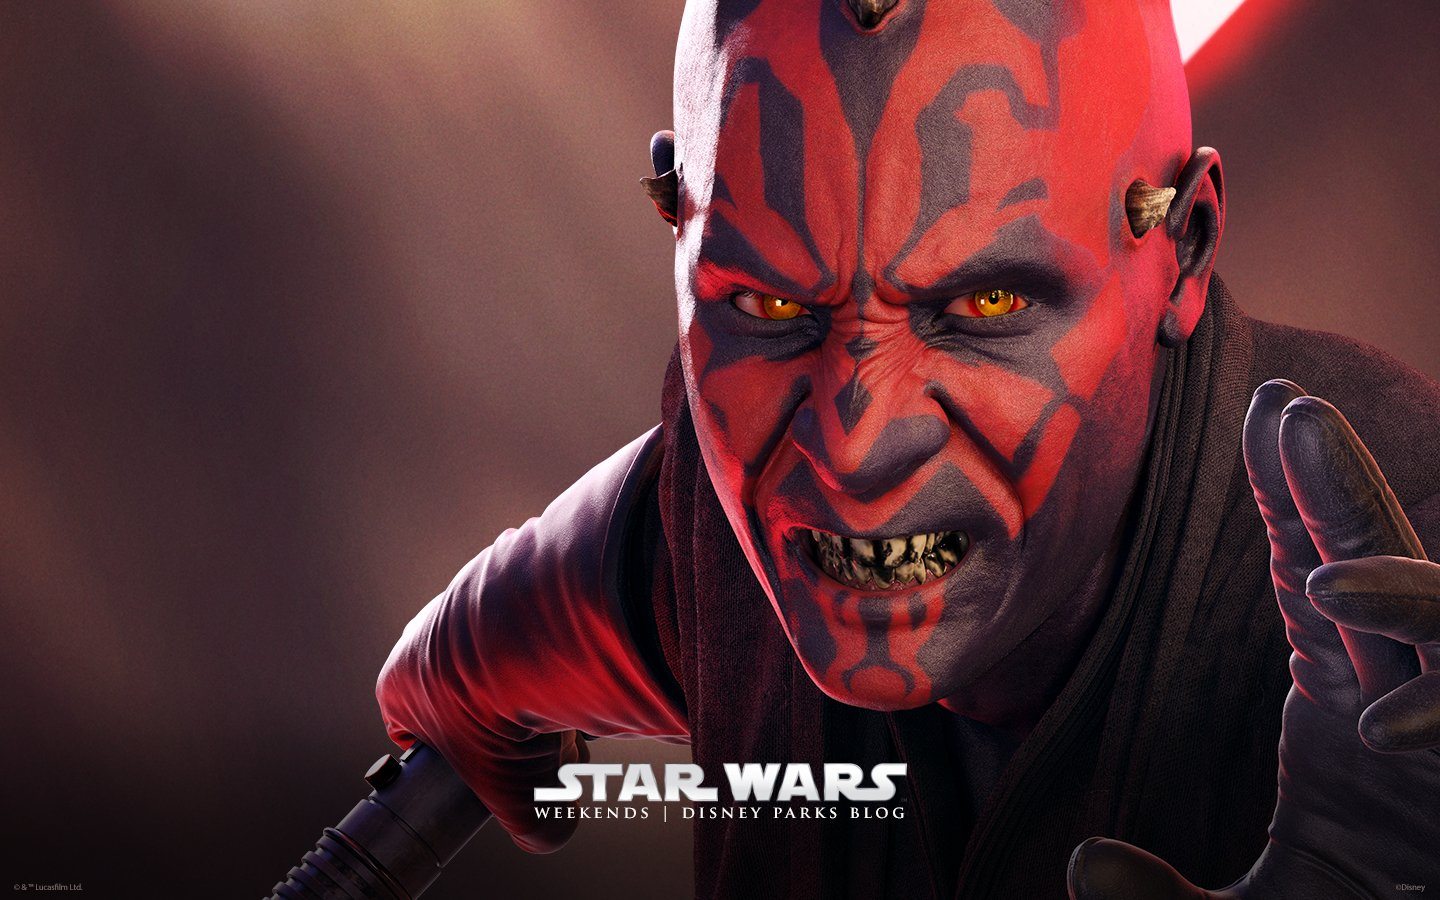 Star Wars Weekends Darth Maul 1440x900